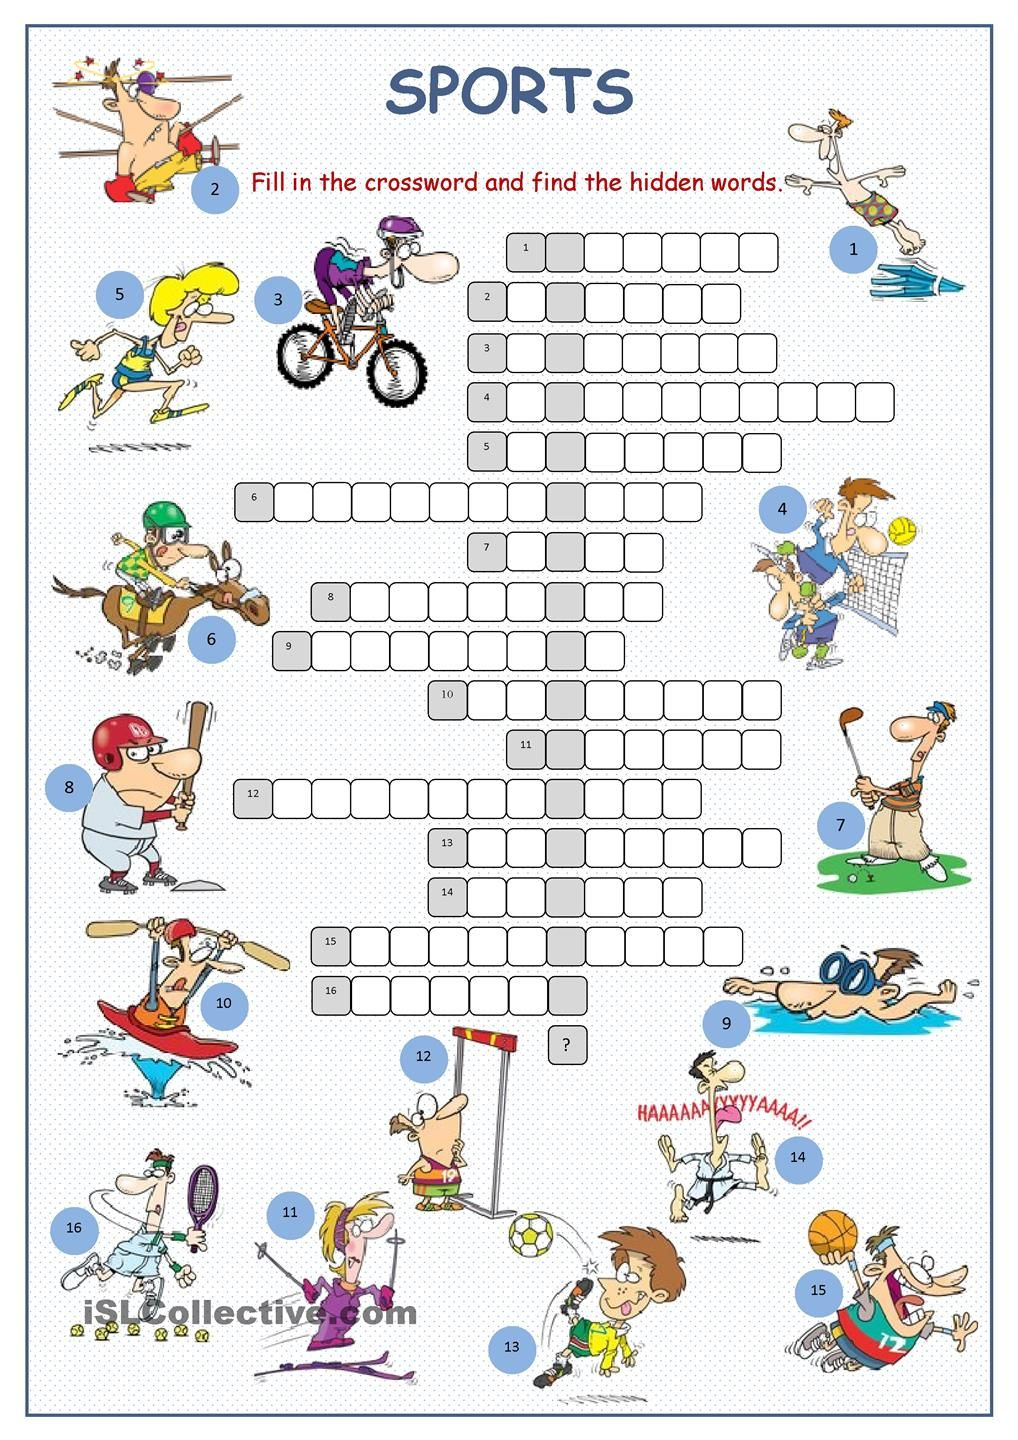 Sports Crossword Puzzle | English | Sports Crossword, Sport English - Printable Crossword Puzzles About Sports